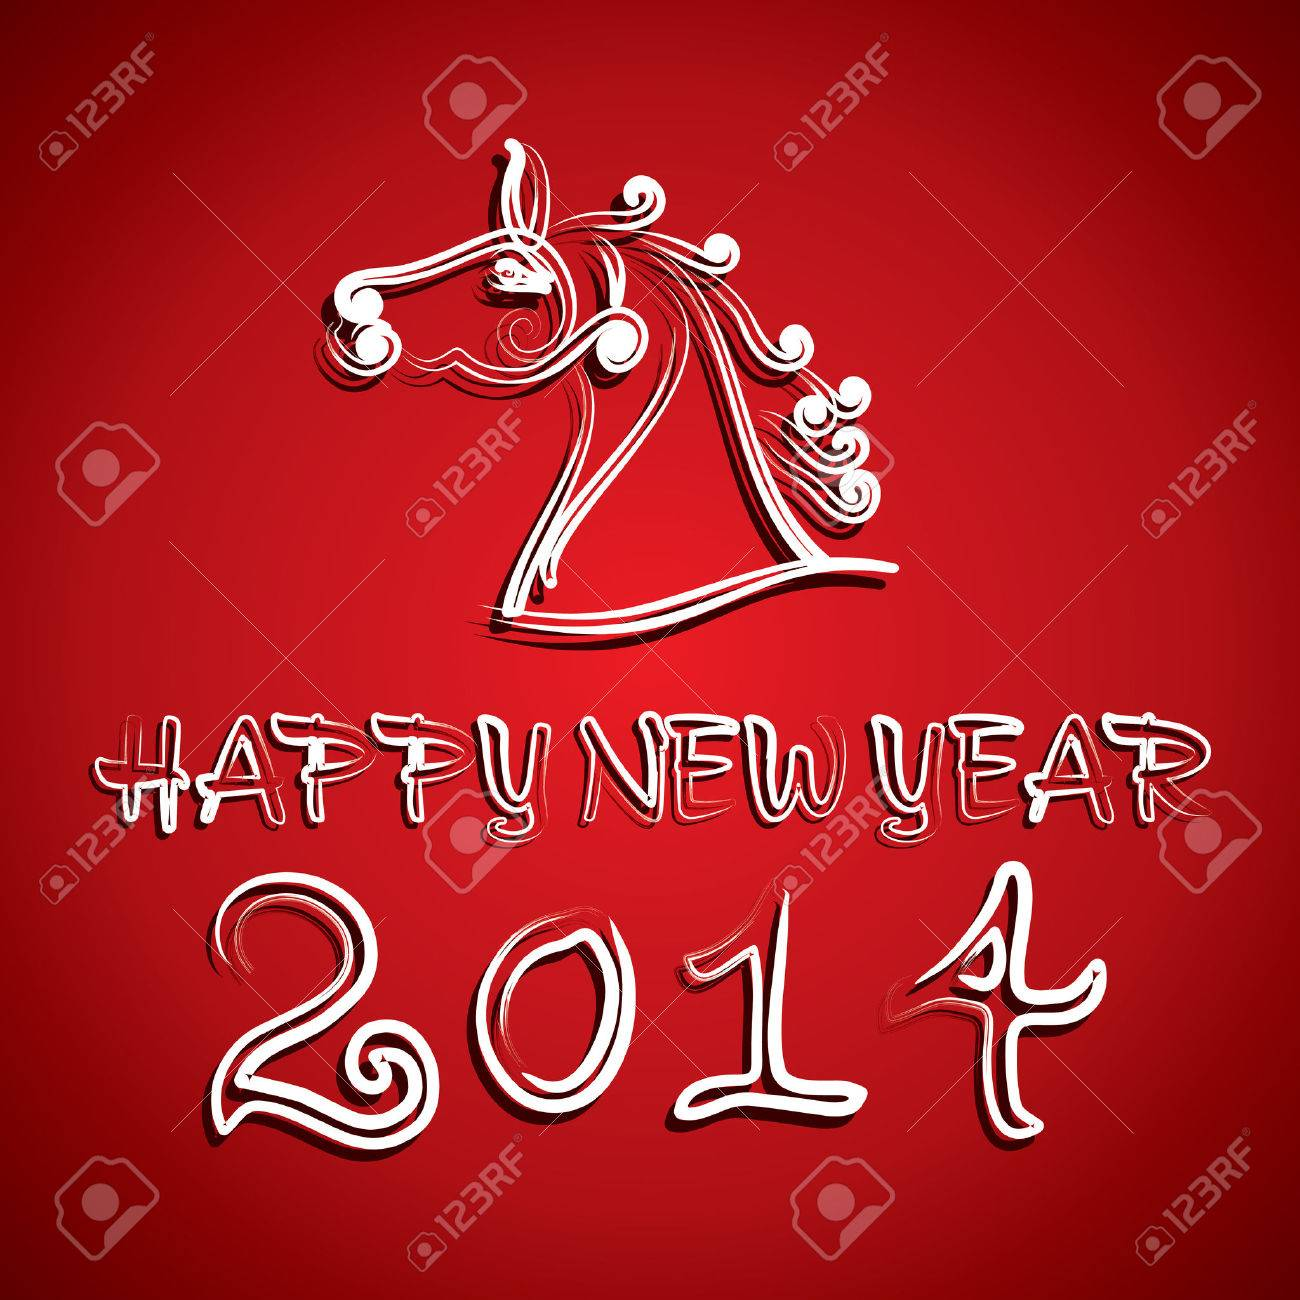 draw horse and new year 2014 background vector Stock Vector - 22567138